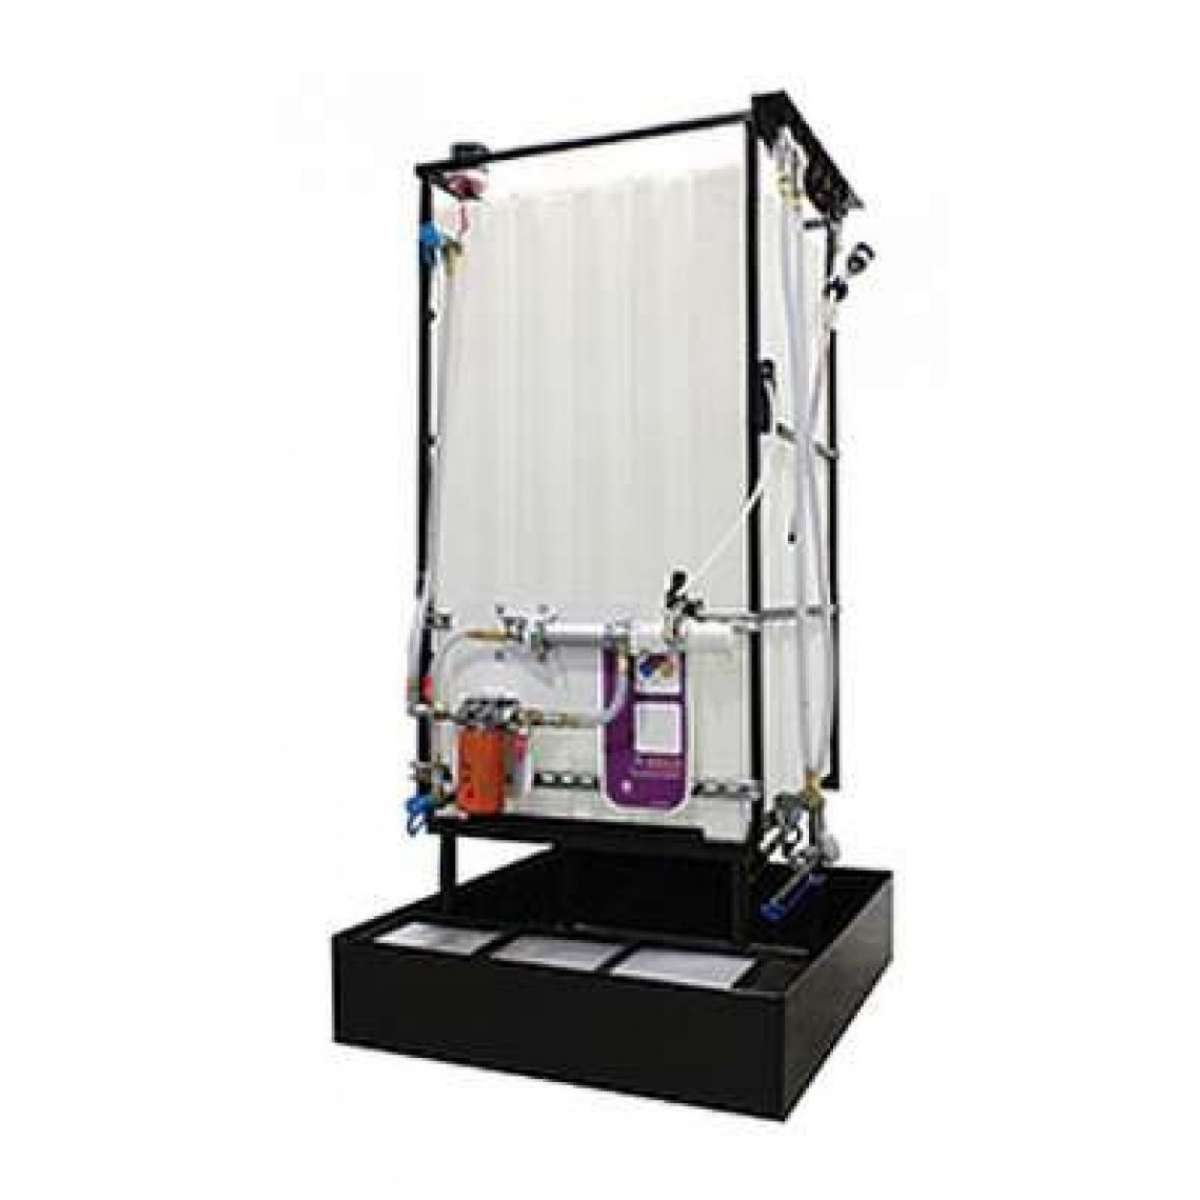 1 X 220 Gallon (870 L) Poly Container System with Hydraulic hoses with upgraded dispensing handle